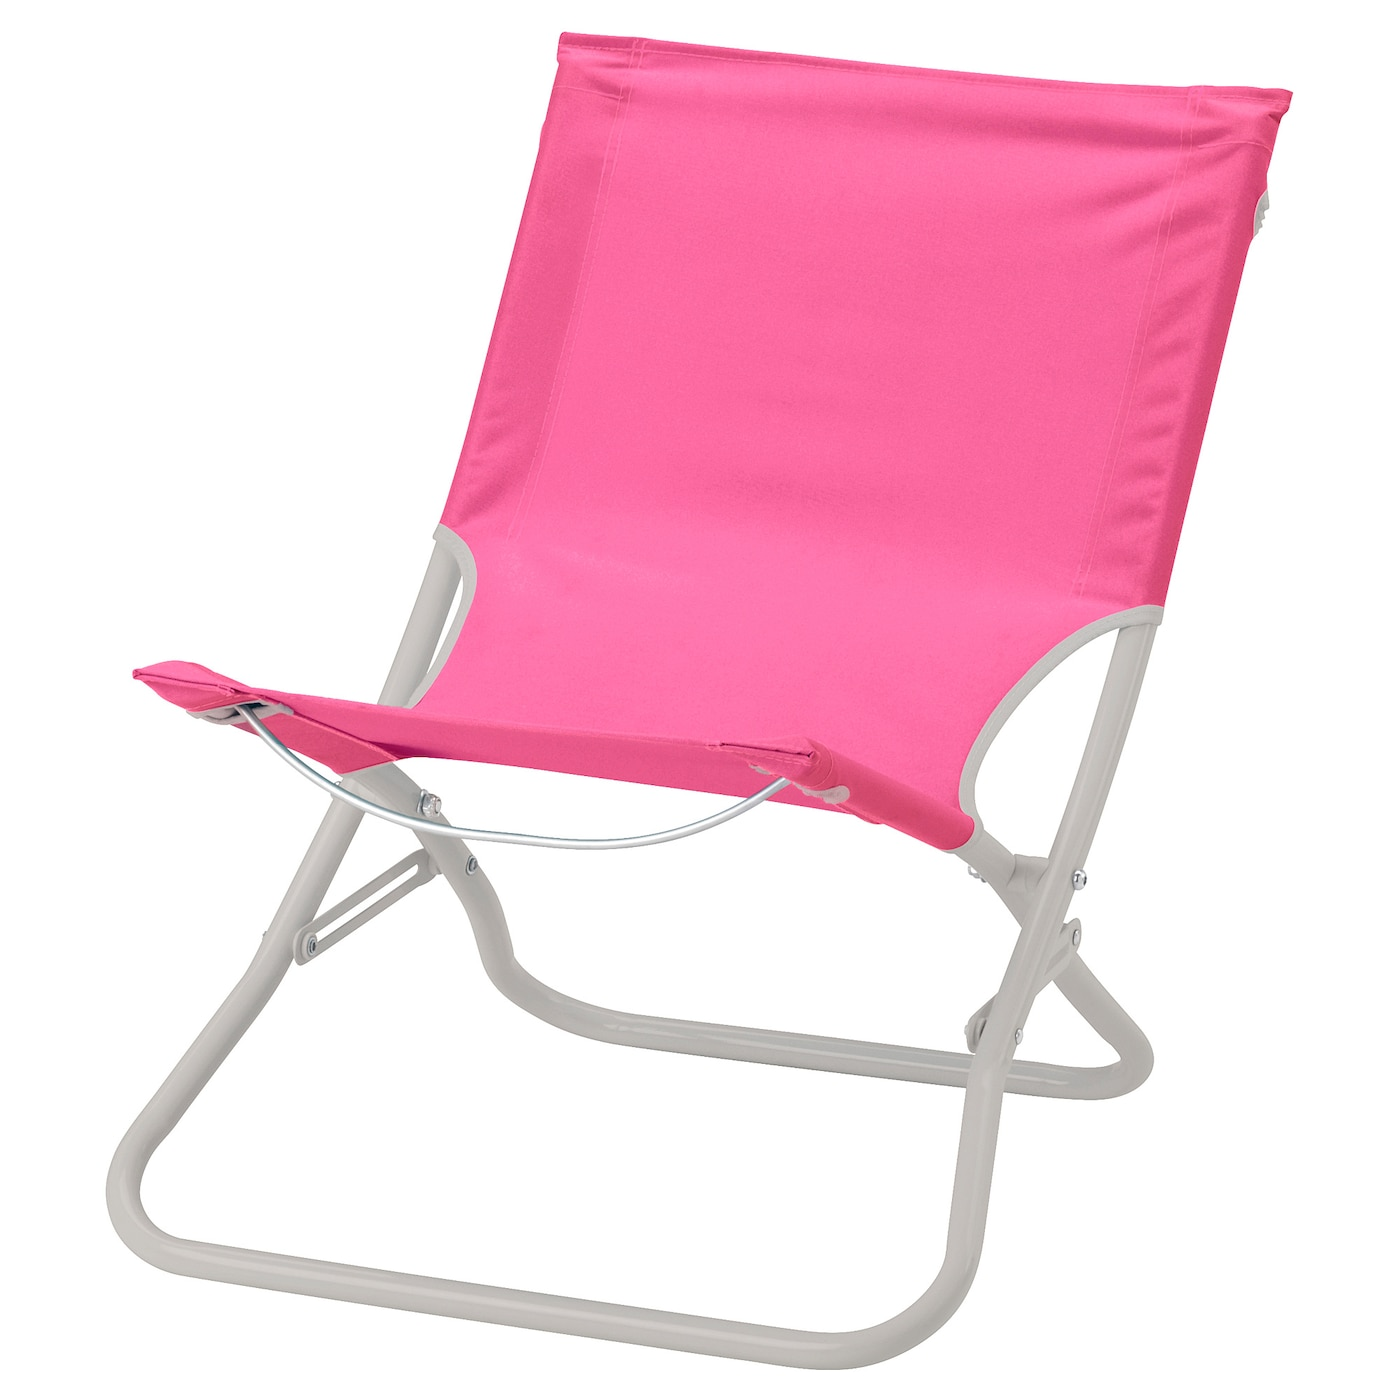 beach elegant of ideas folding chair chairs lounge